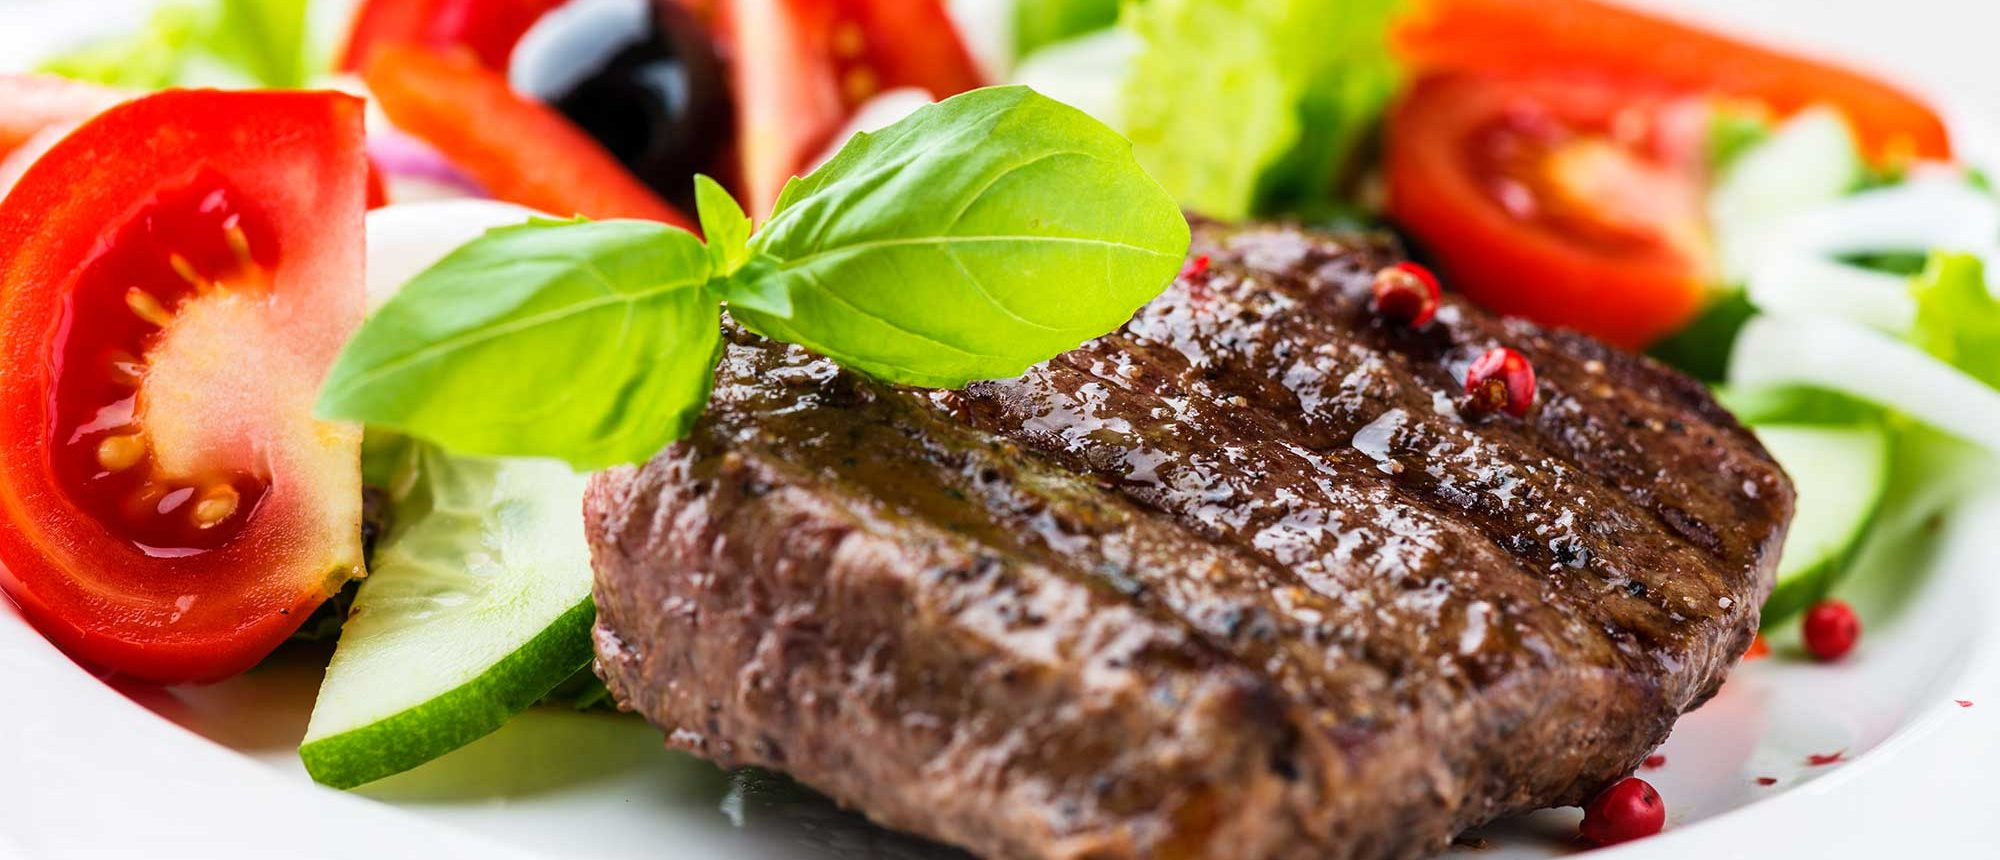 Closeup of grilled beef steak with fresh vegetables.